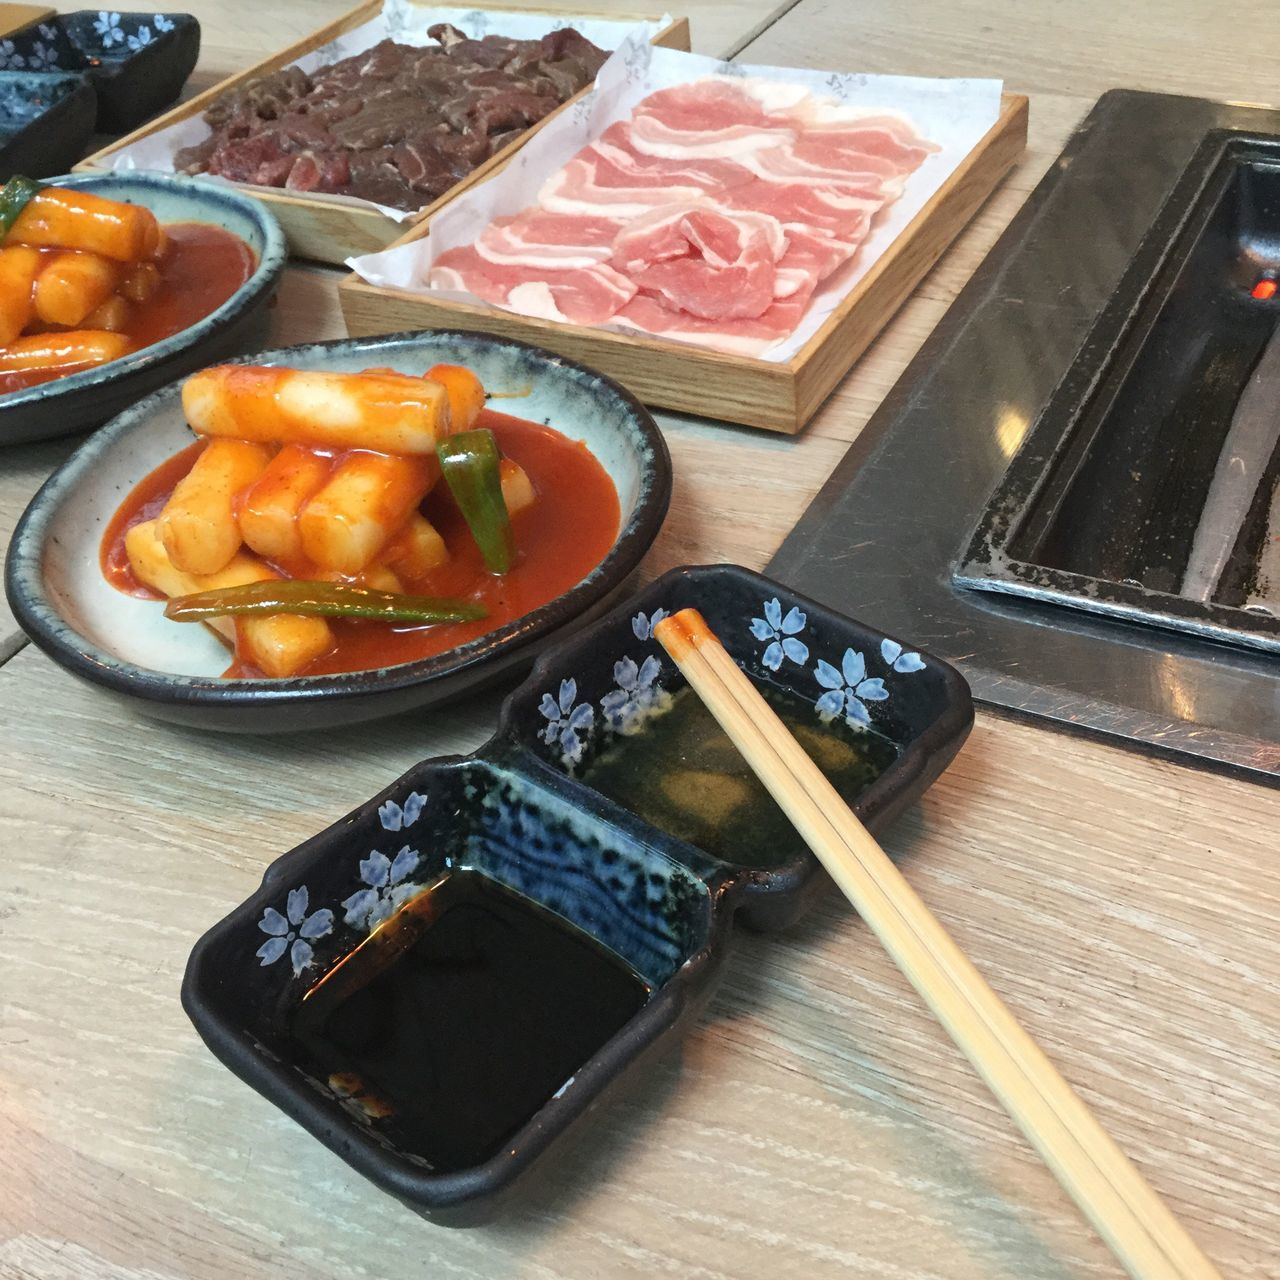 Visual Feast Food Food And Drink Meat Bowl High Angle View Freshness Table Indoors  No People Chopsticks Healthy Eating Ready-to-eat Close-up Day Korean Food Korea Food Barbecue Koreanbbq